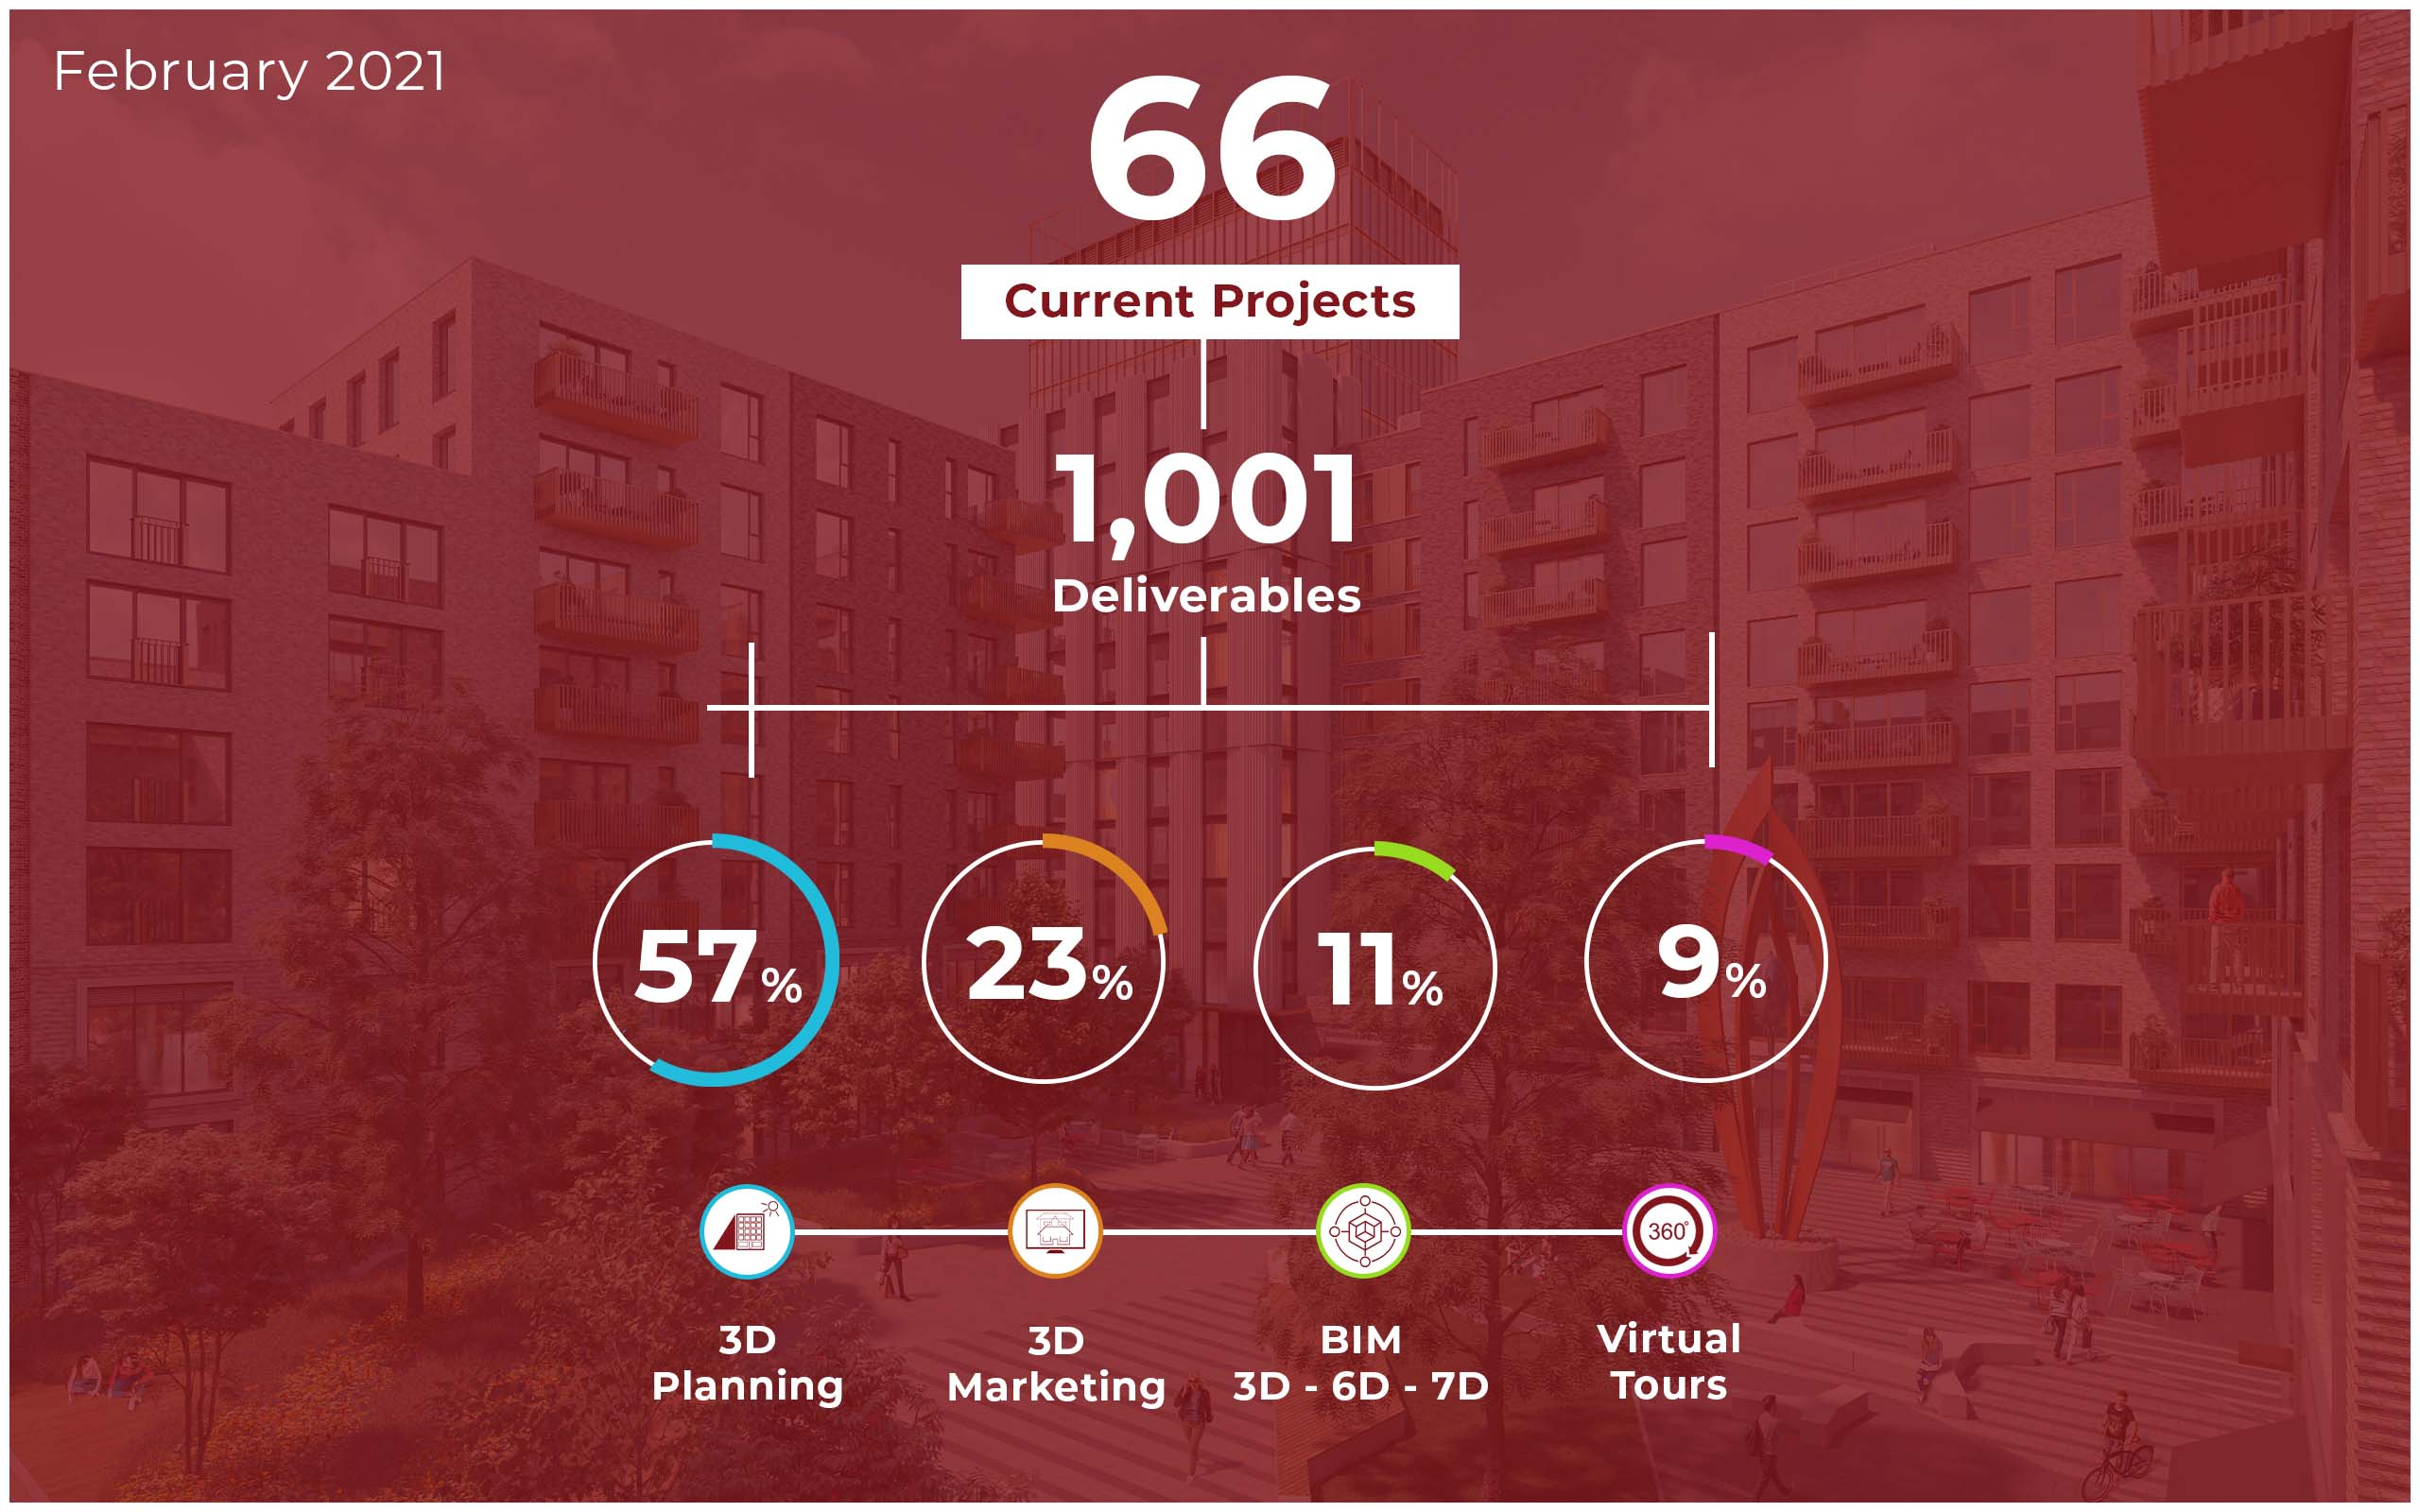 February 2021 - The Breakdown: 3D Design Bureau's statistics across their 3D solutions of 3D planning, 3D marketing, virtual tours and BIM.